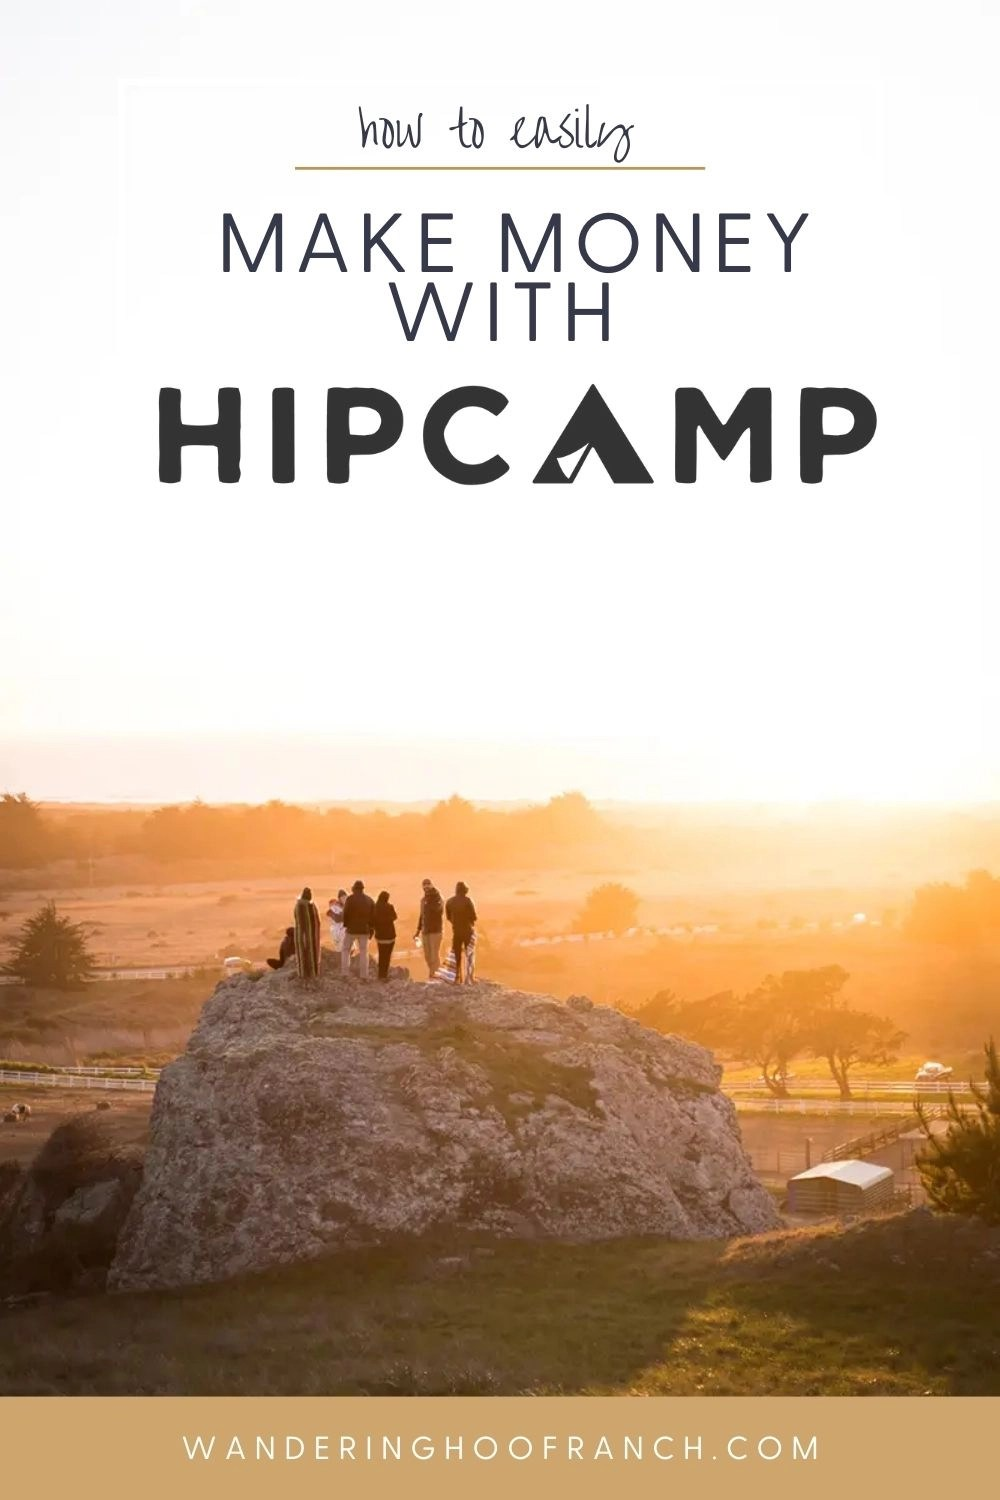 how to easily make money with hipcamp pin image, campers standing on a large rock overlooking the sunrise at a beautiful farm landscape